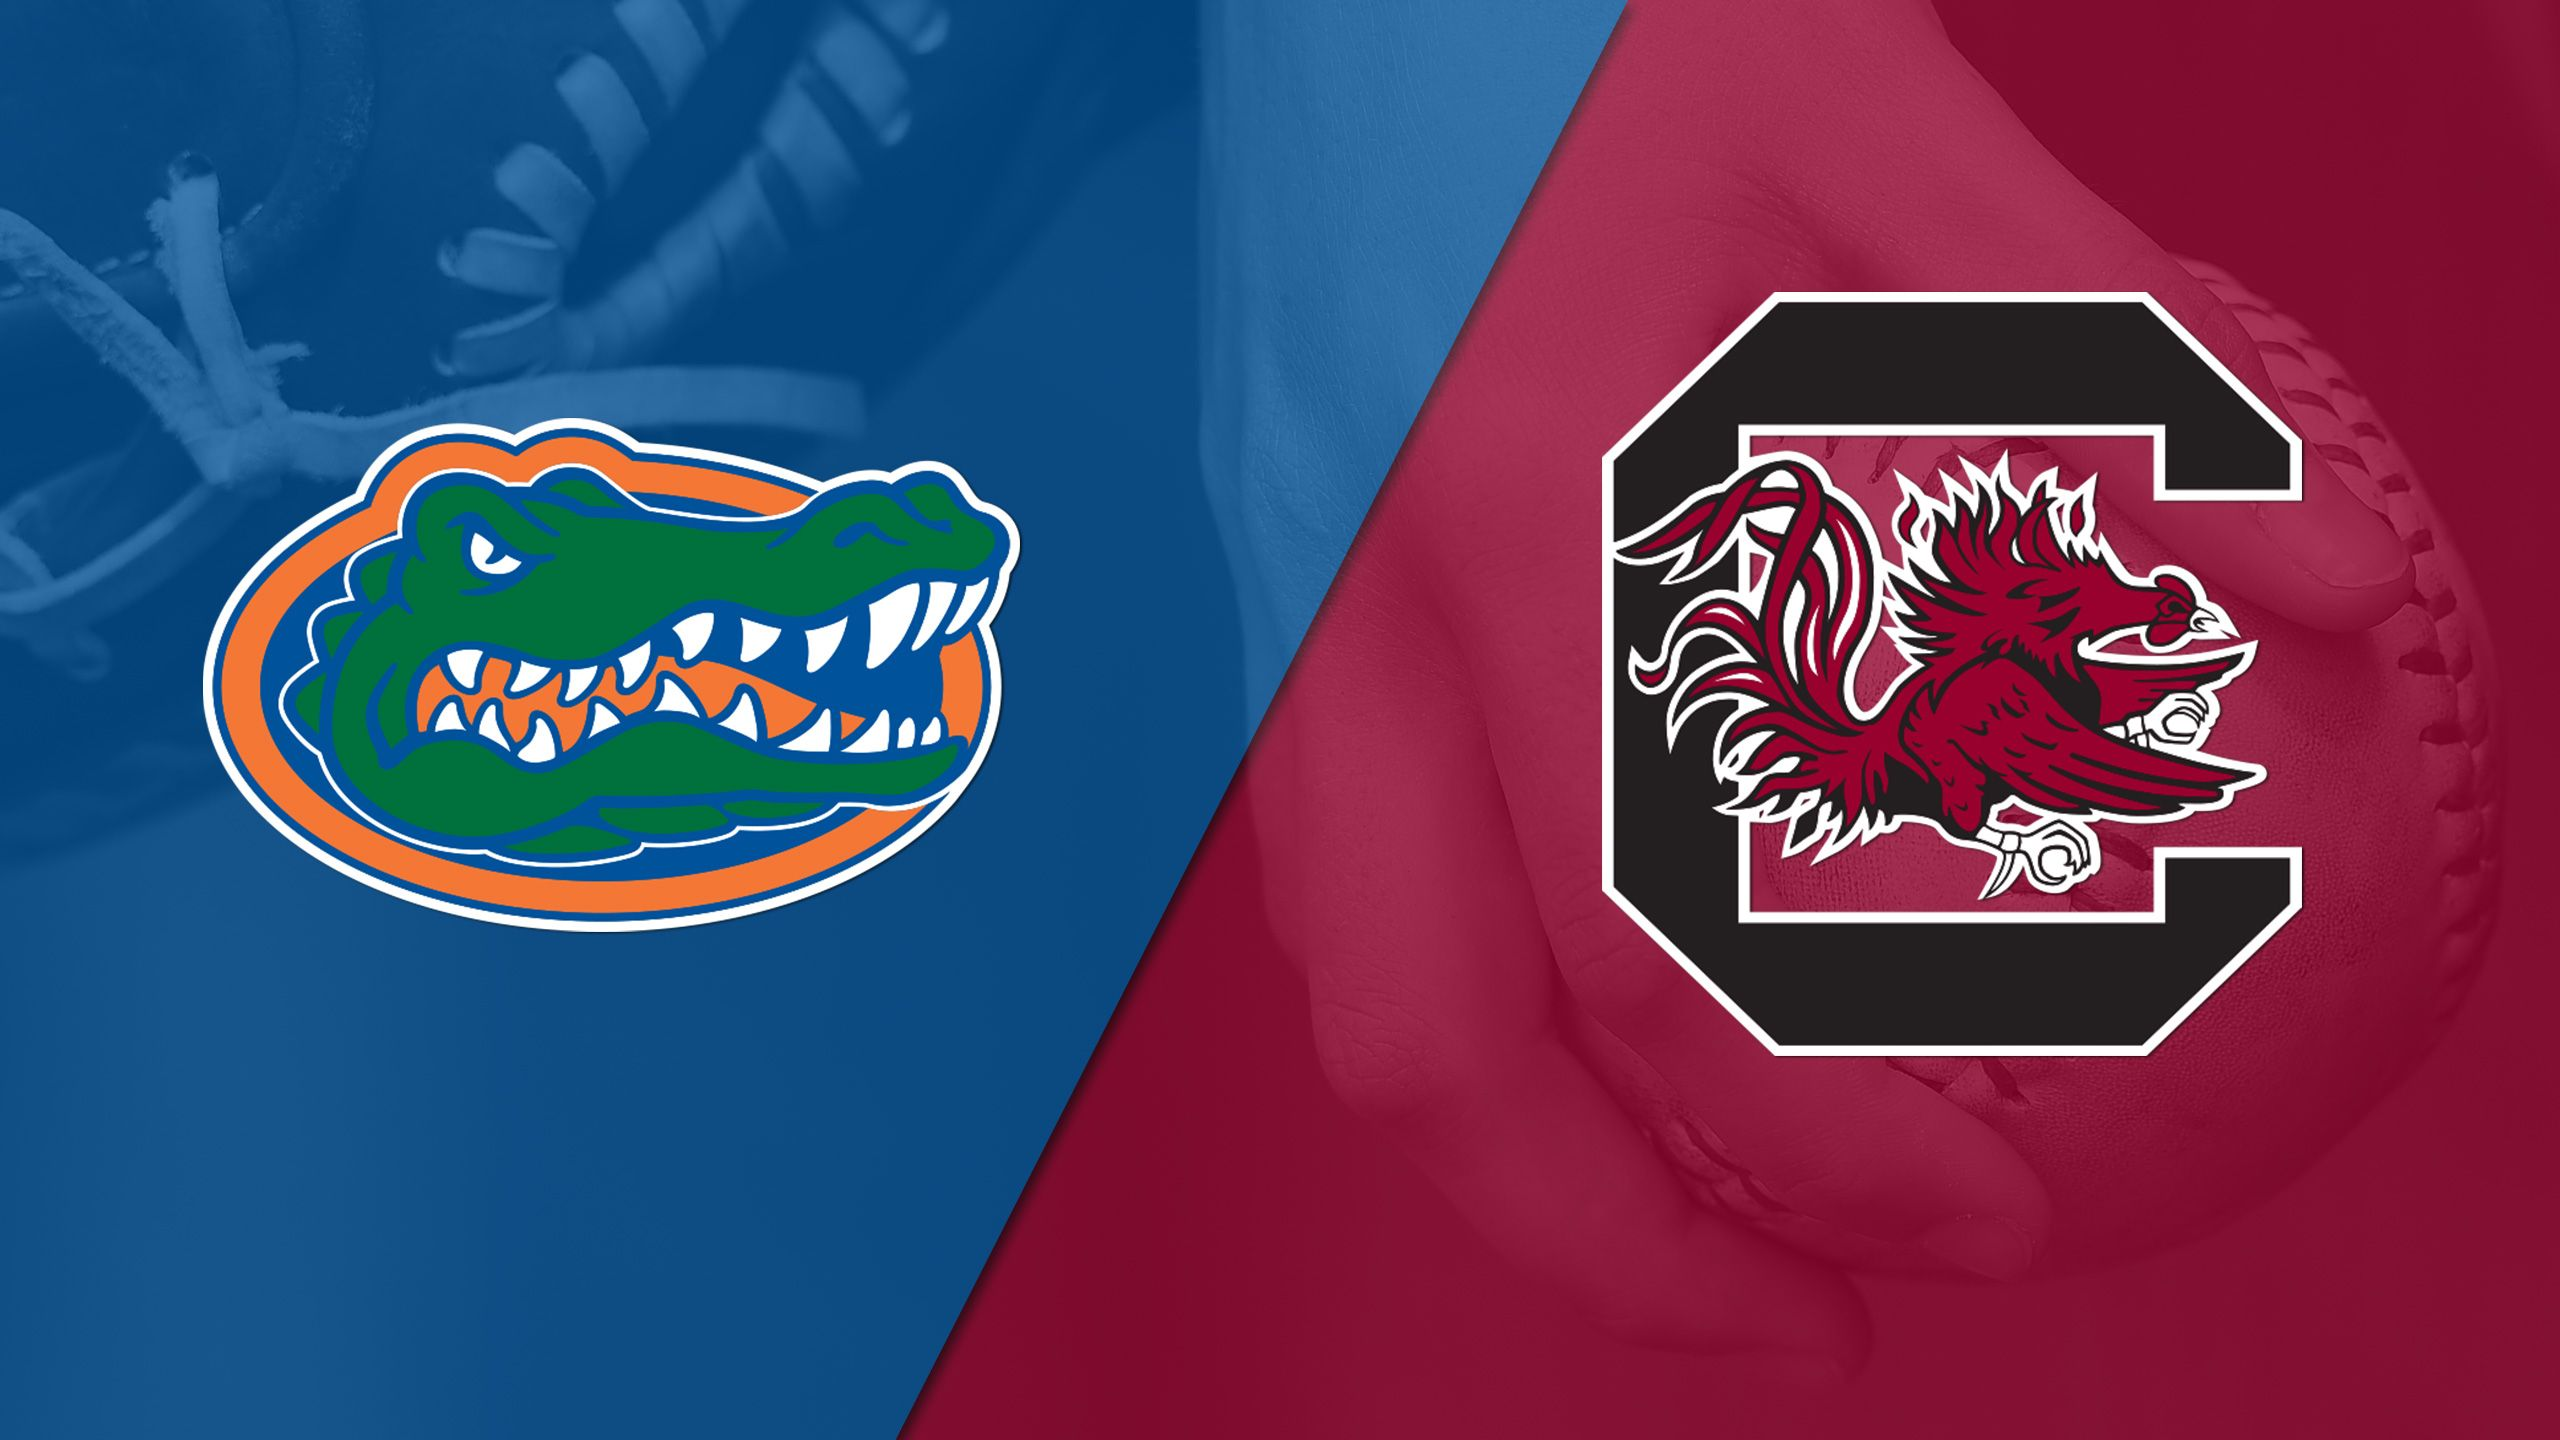 #1 Florida vs. South Carolina (Softball)